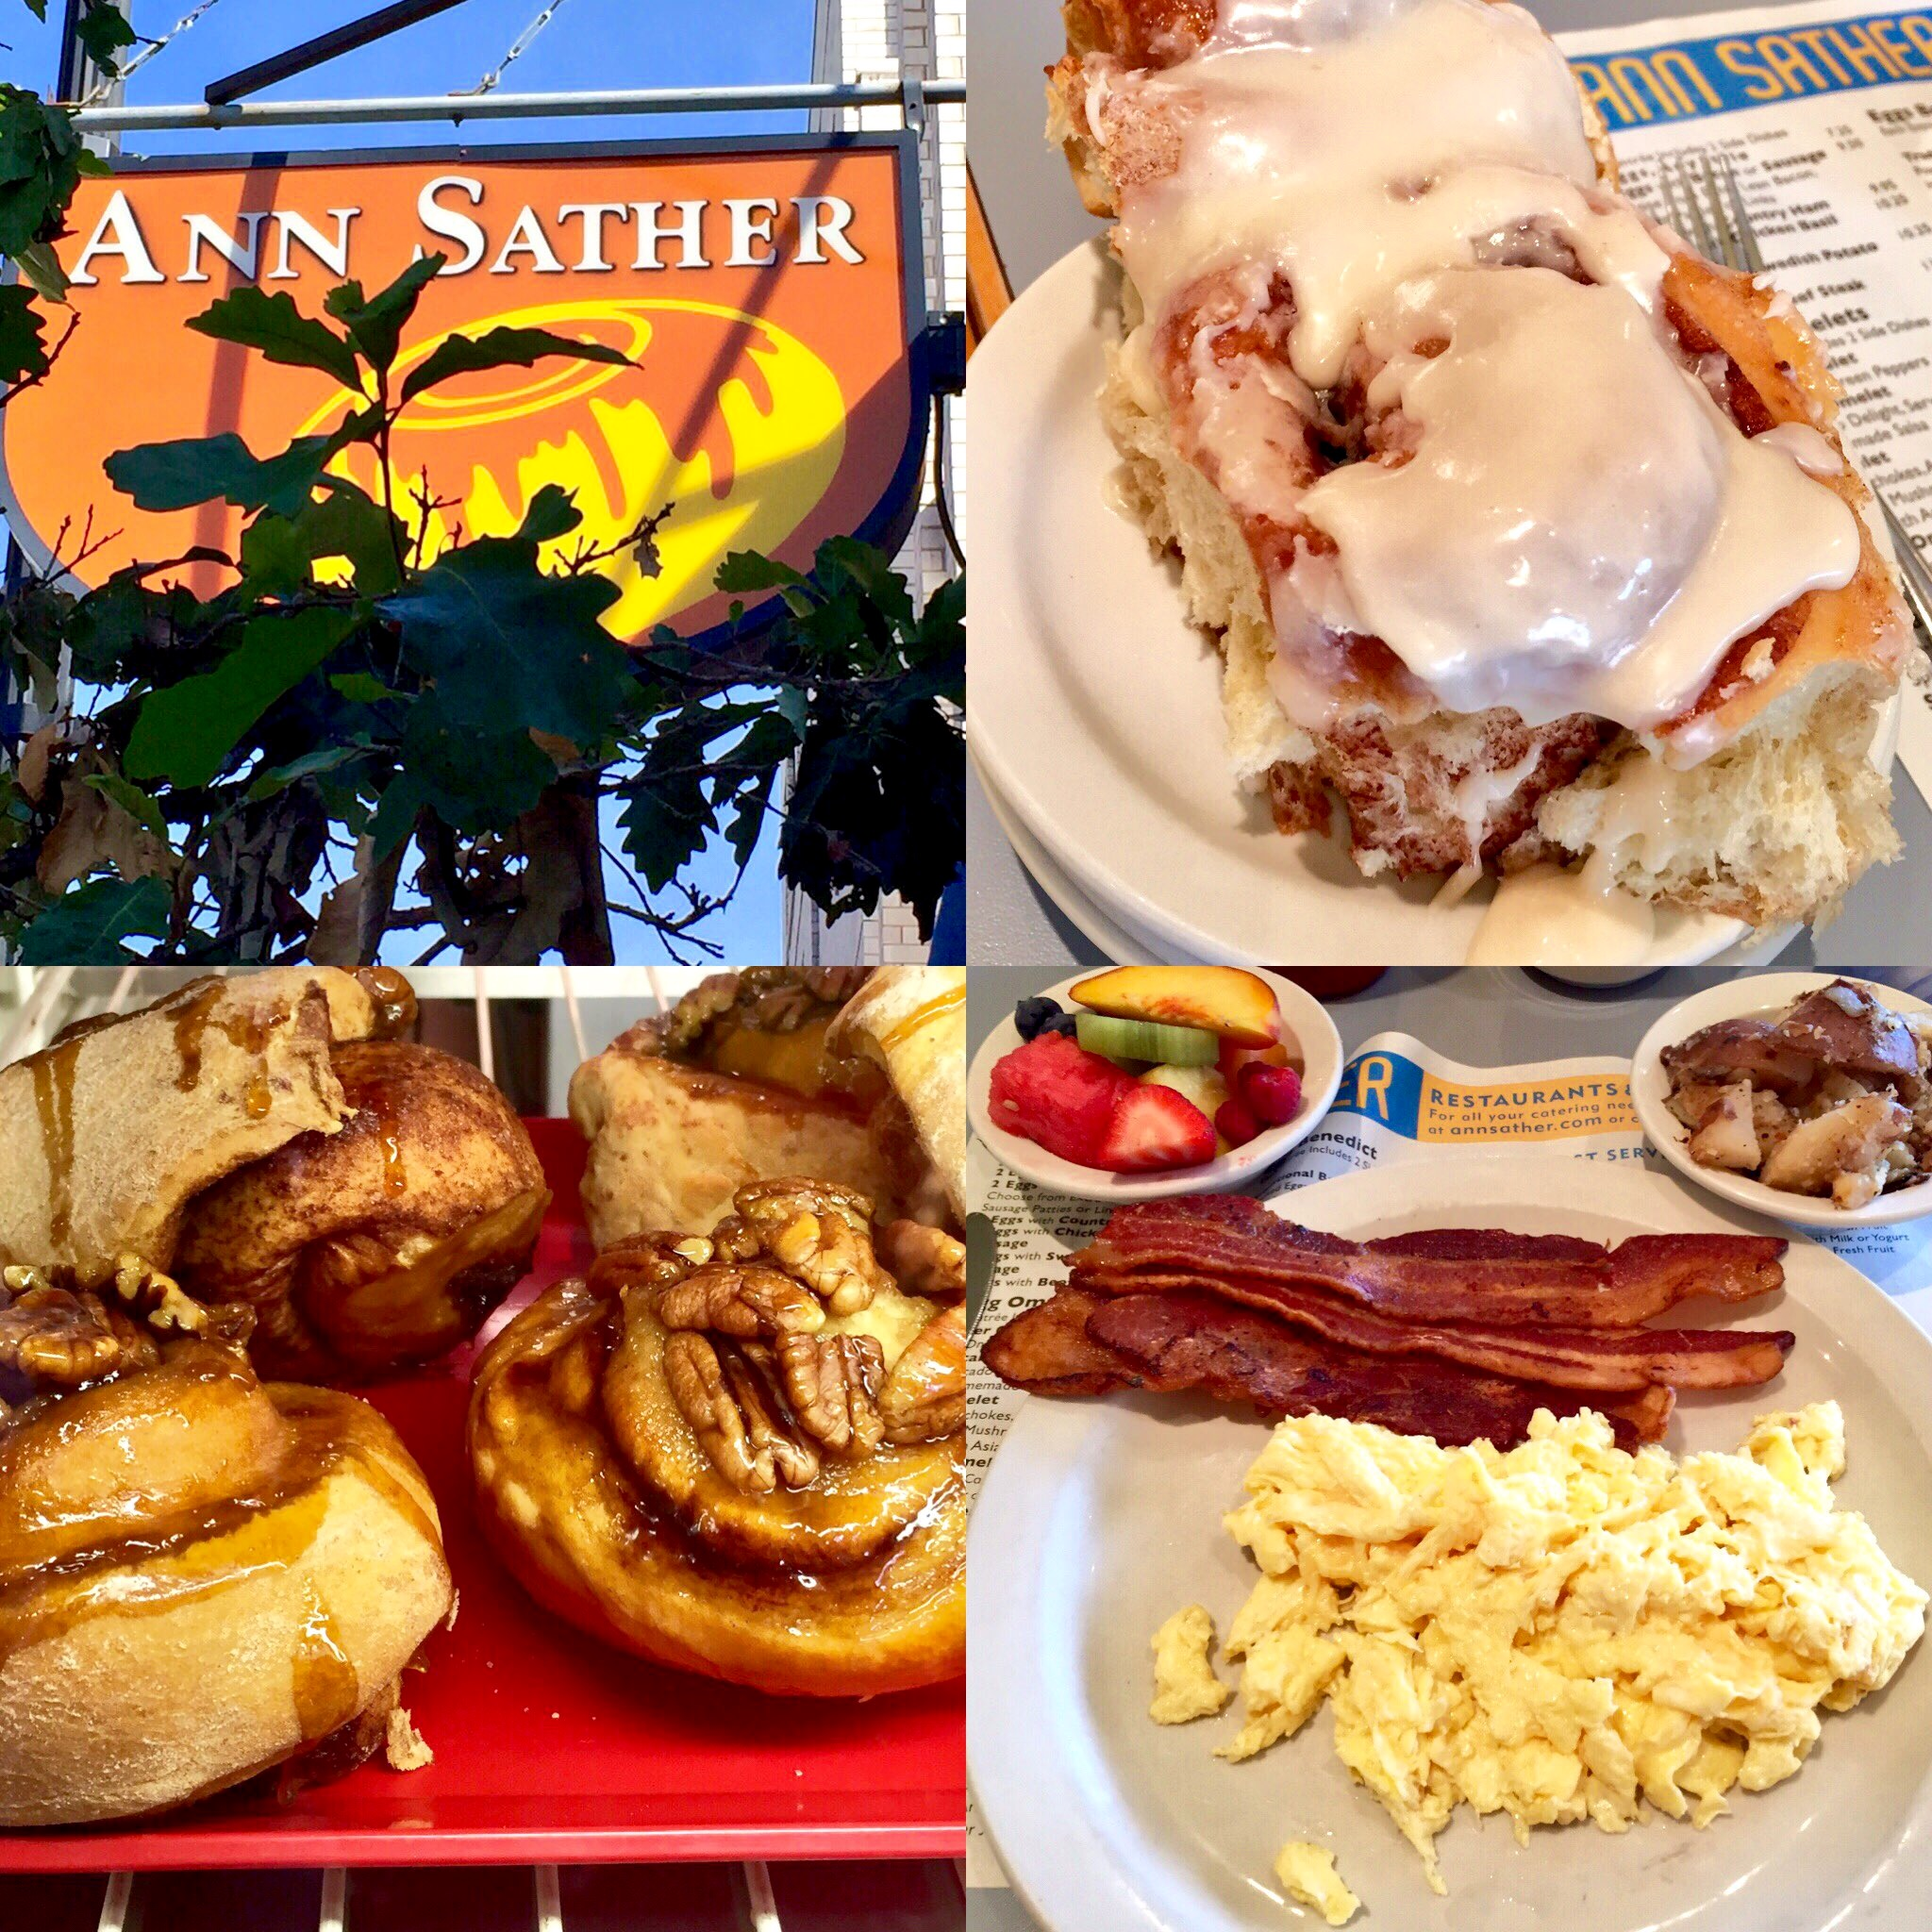 Ann Sather: Best breakfast in Lakeview East!